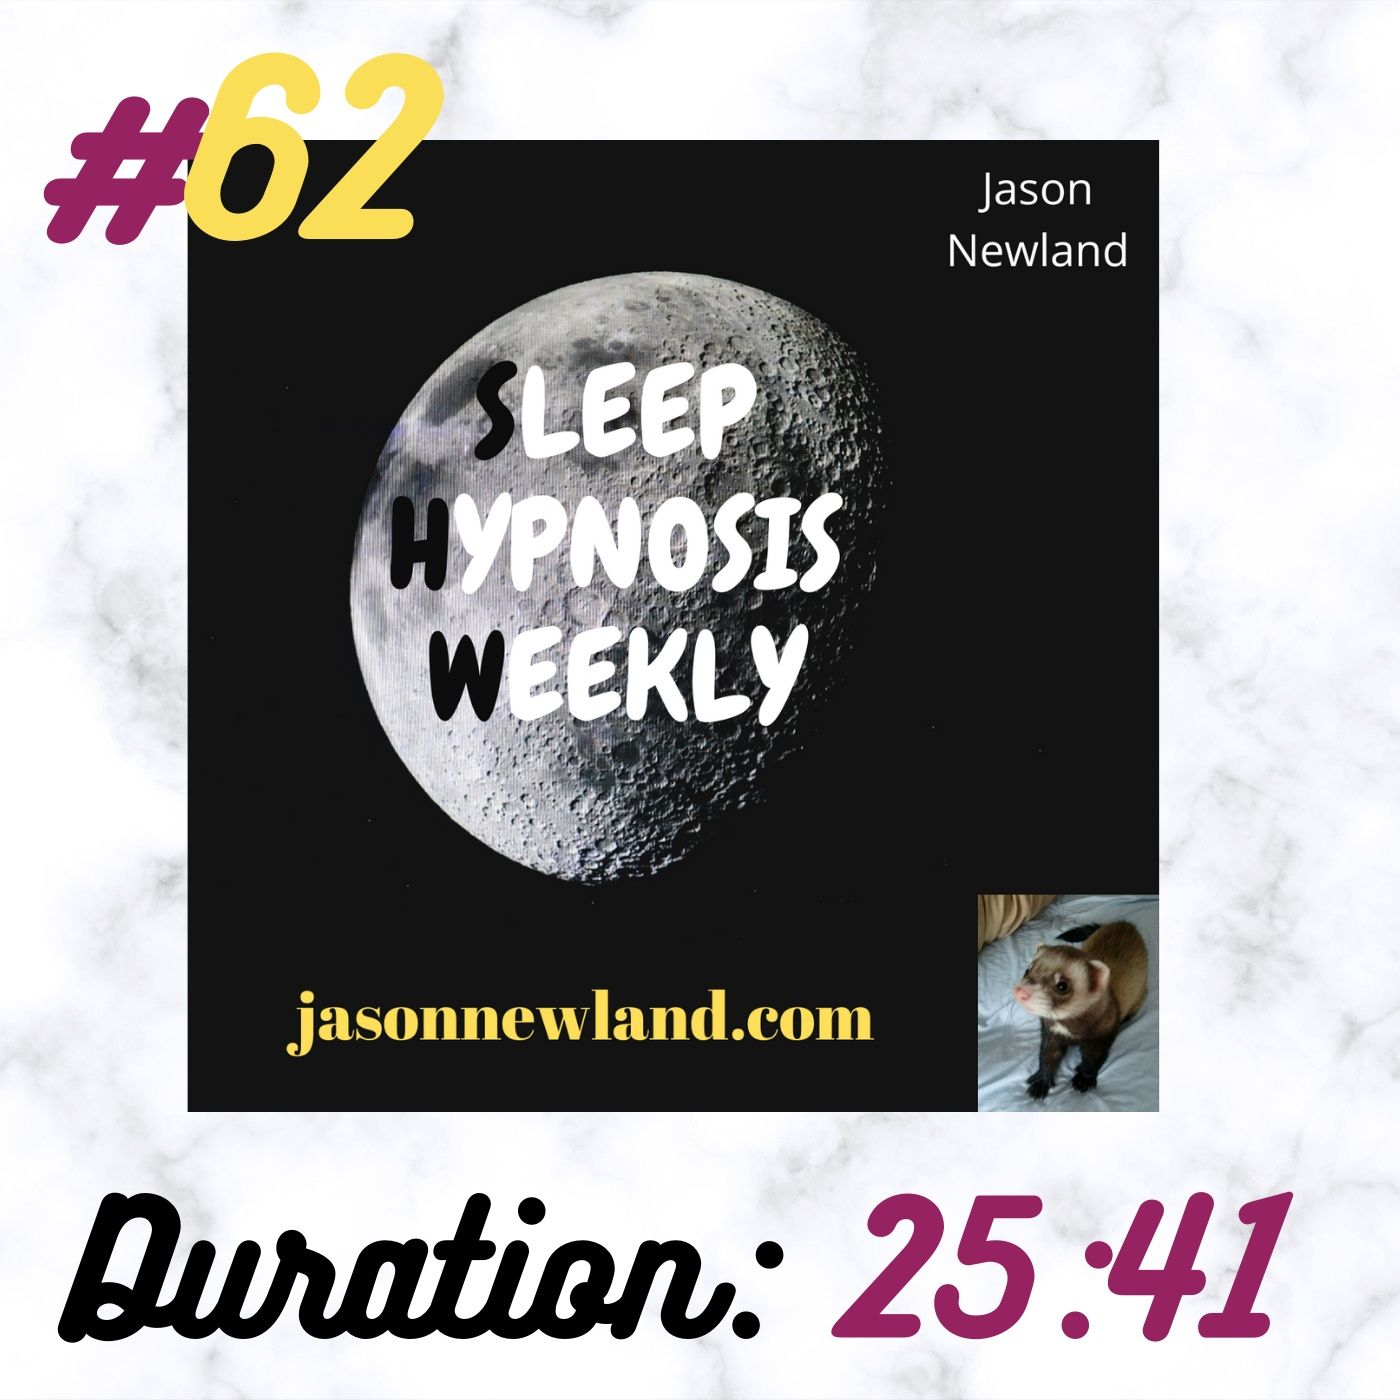 "Sleep Hypnosis Weekly #62 ""NOTHING MATTERS WHEN YOU RELAX DEEPLY"" (Jason Newland) (3rd January 2021)"